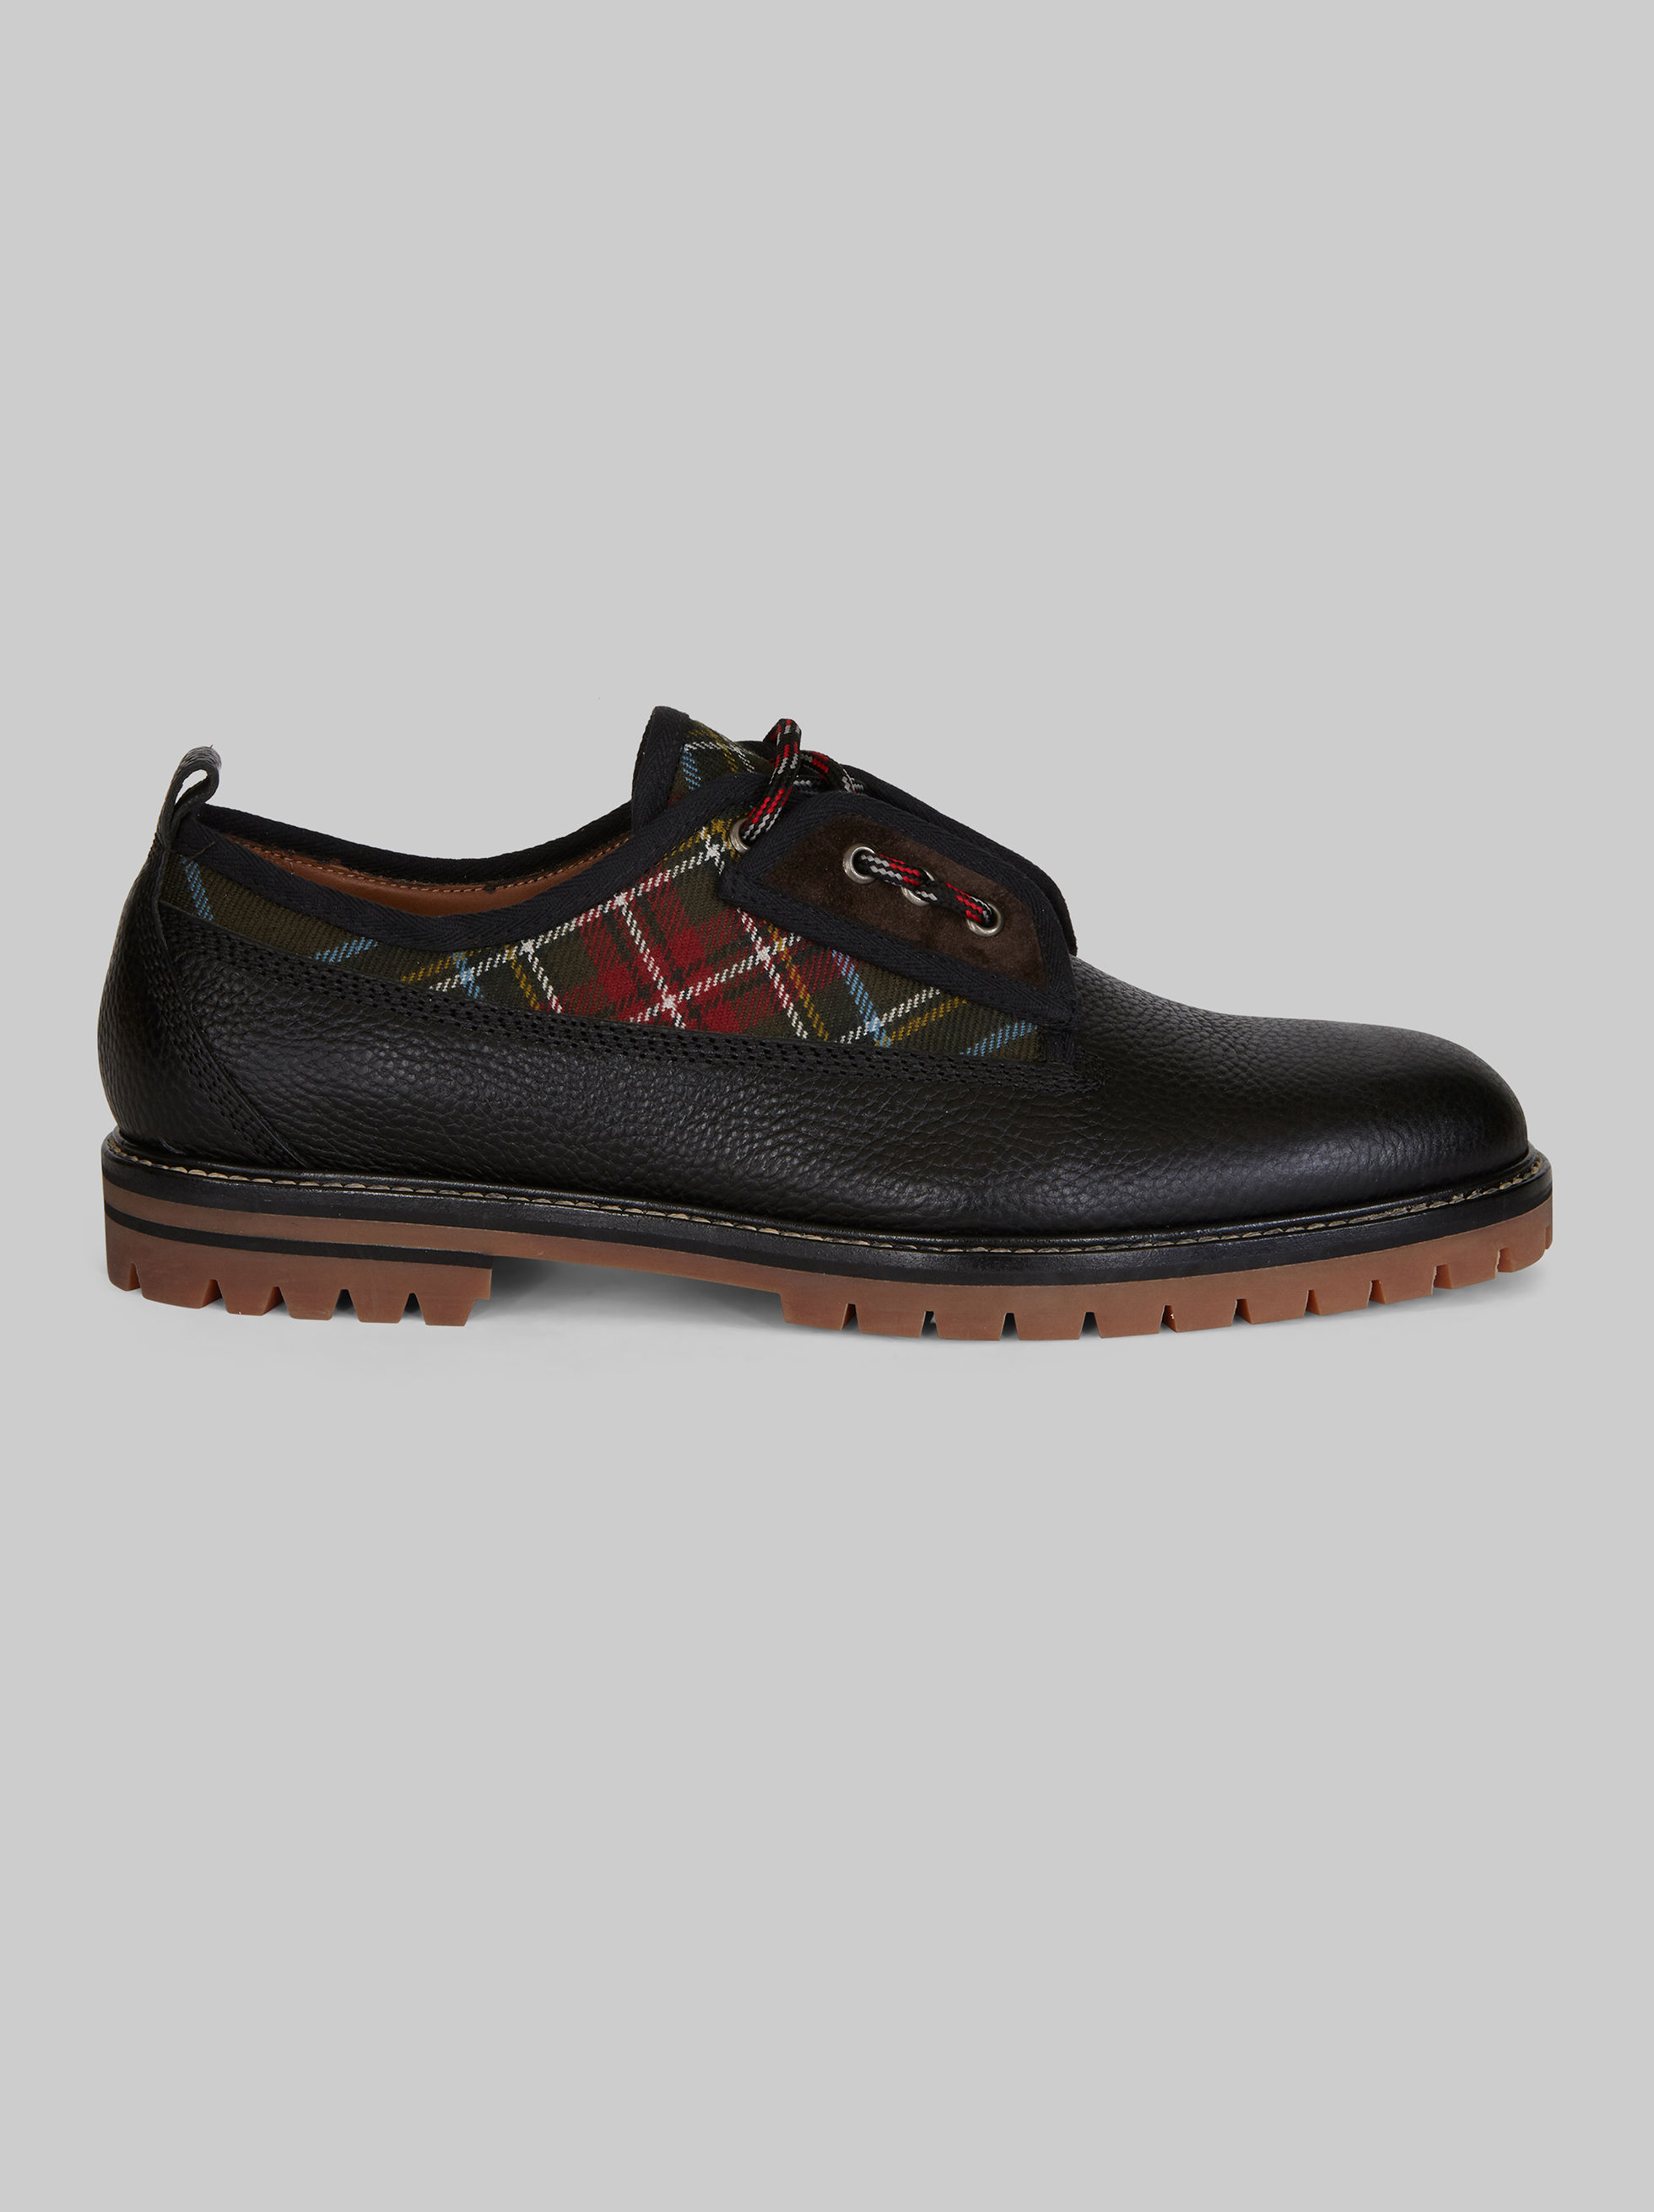 LEATHER LACED SHOES WITH TARTAN INSERTS